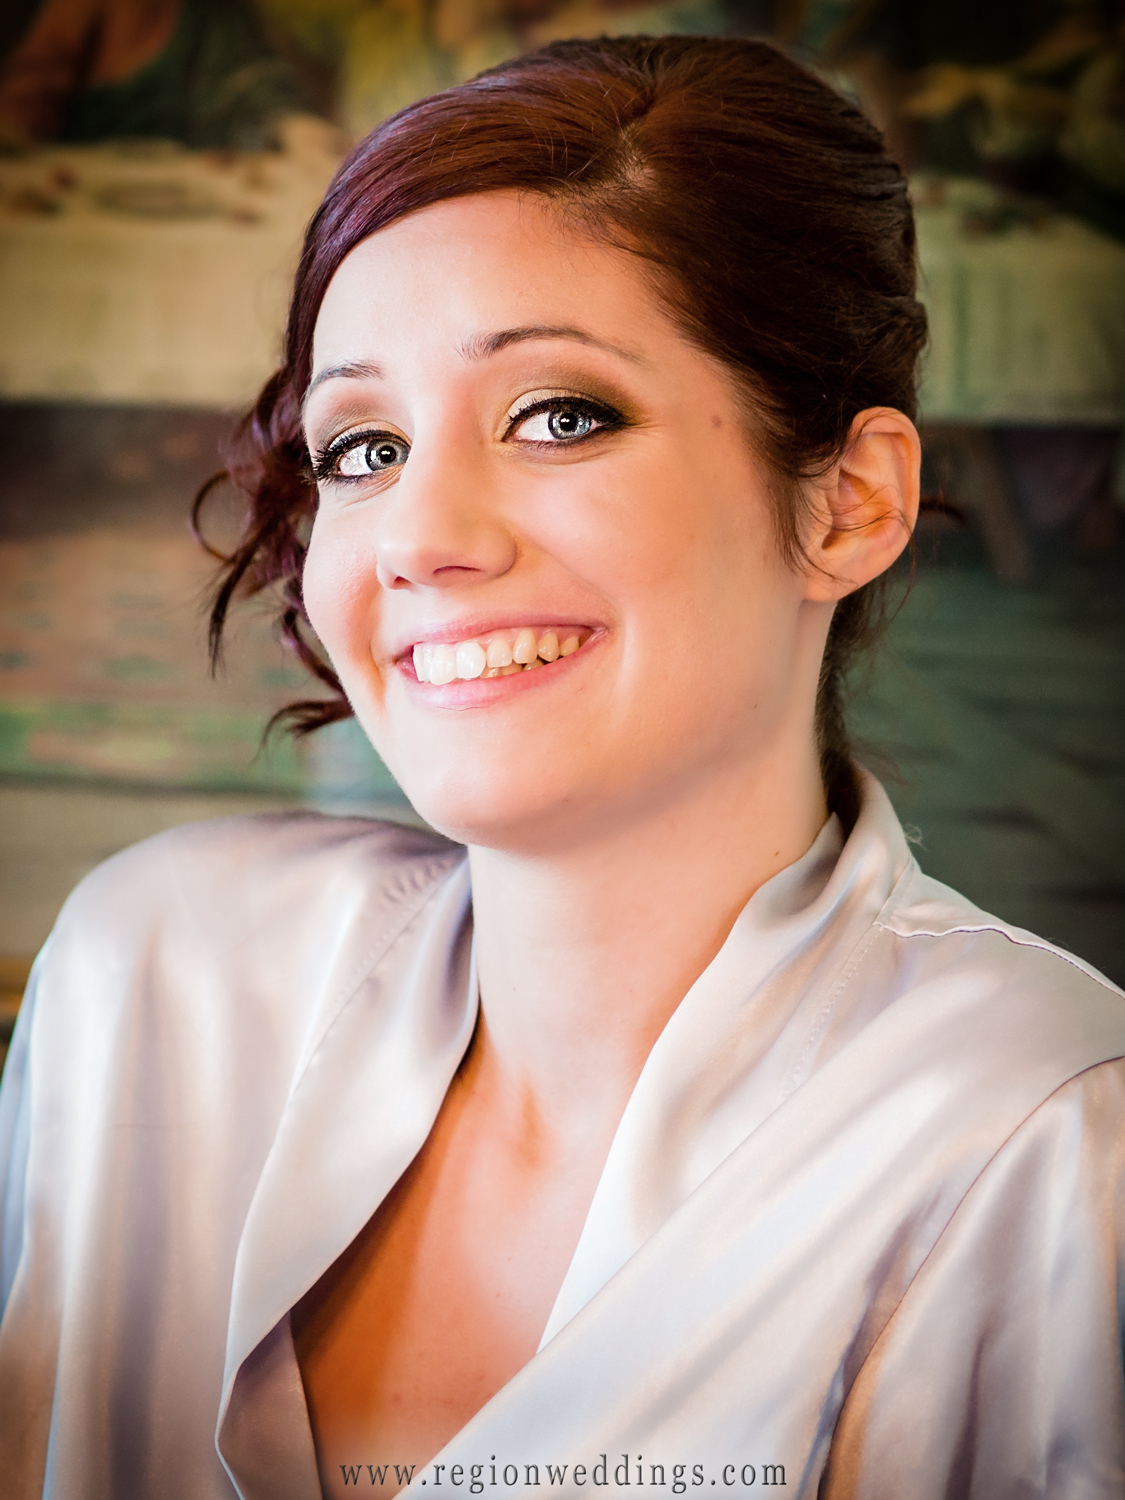 The bride is all smiles on the morning of her wedding.